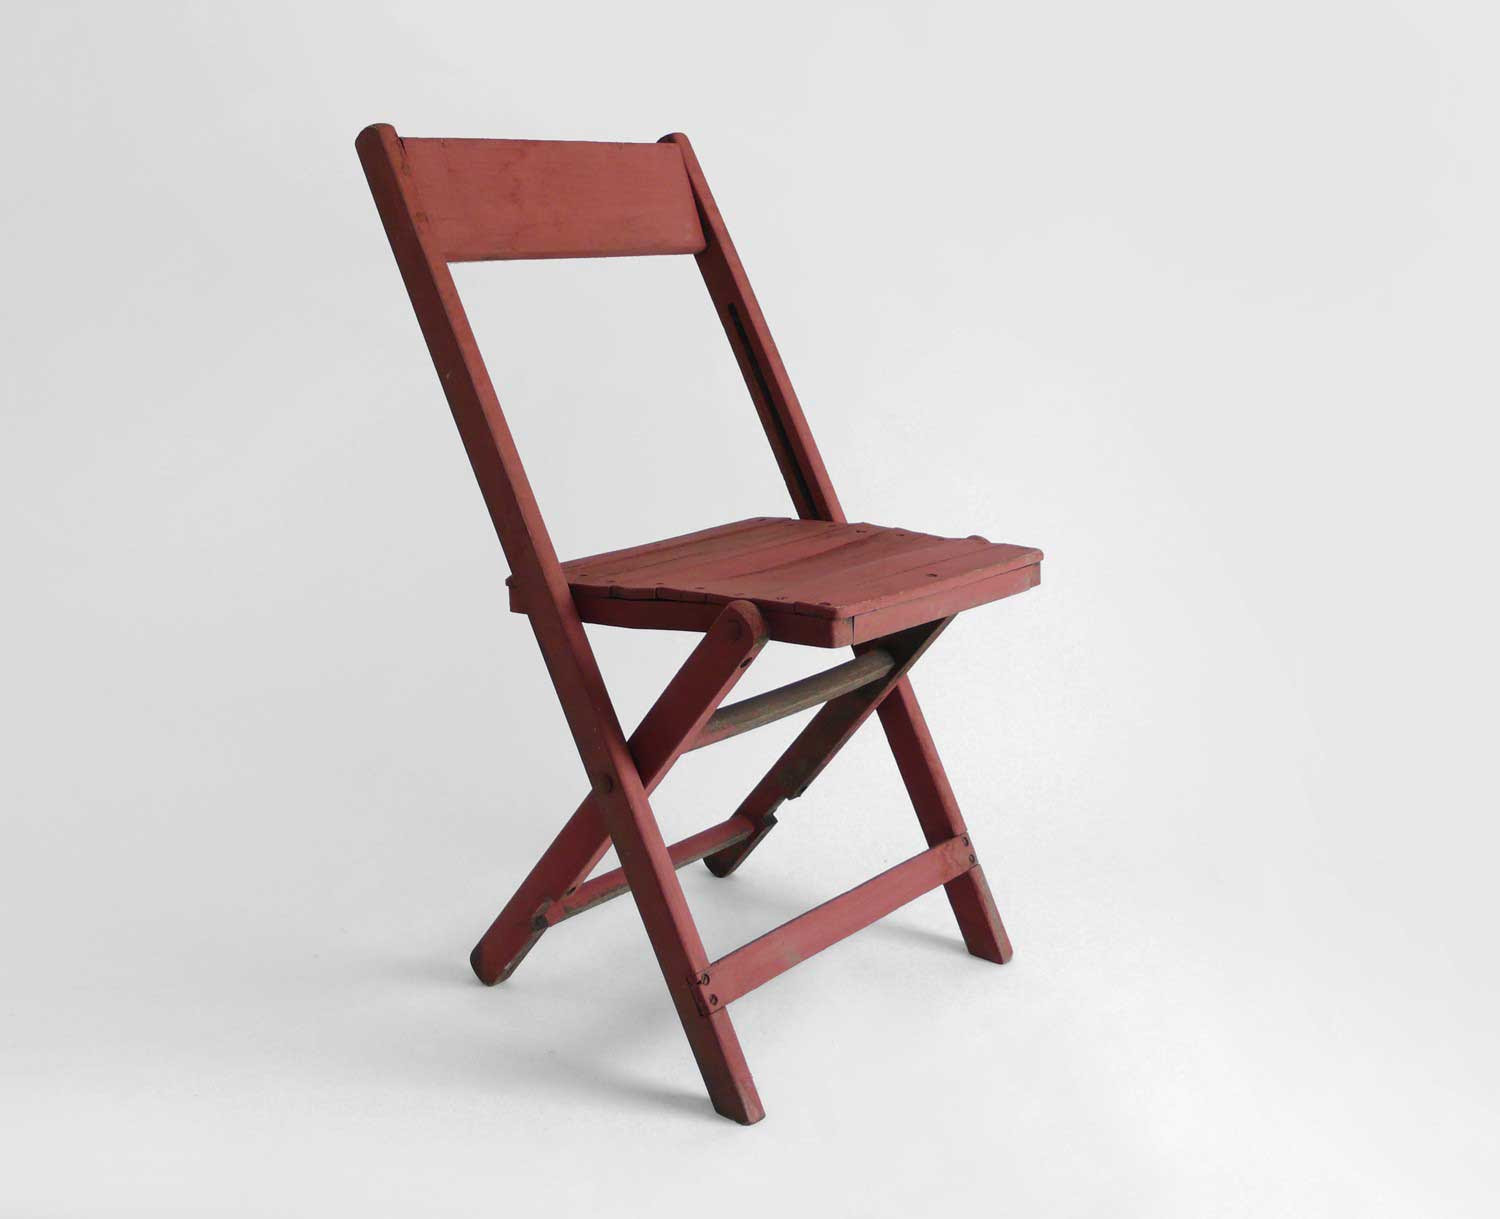 Collection Of Chair Pictures Charles Bentley Pair Of Solid Wooden Teak Outdoor Folding Garden Patio Chairs Ebay